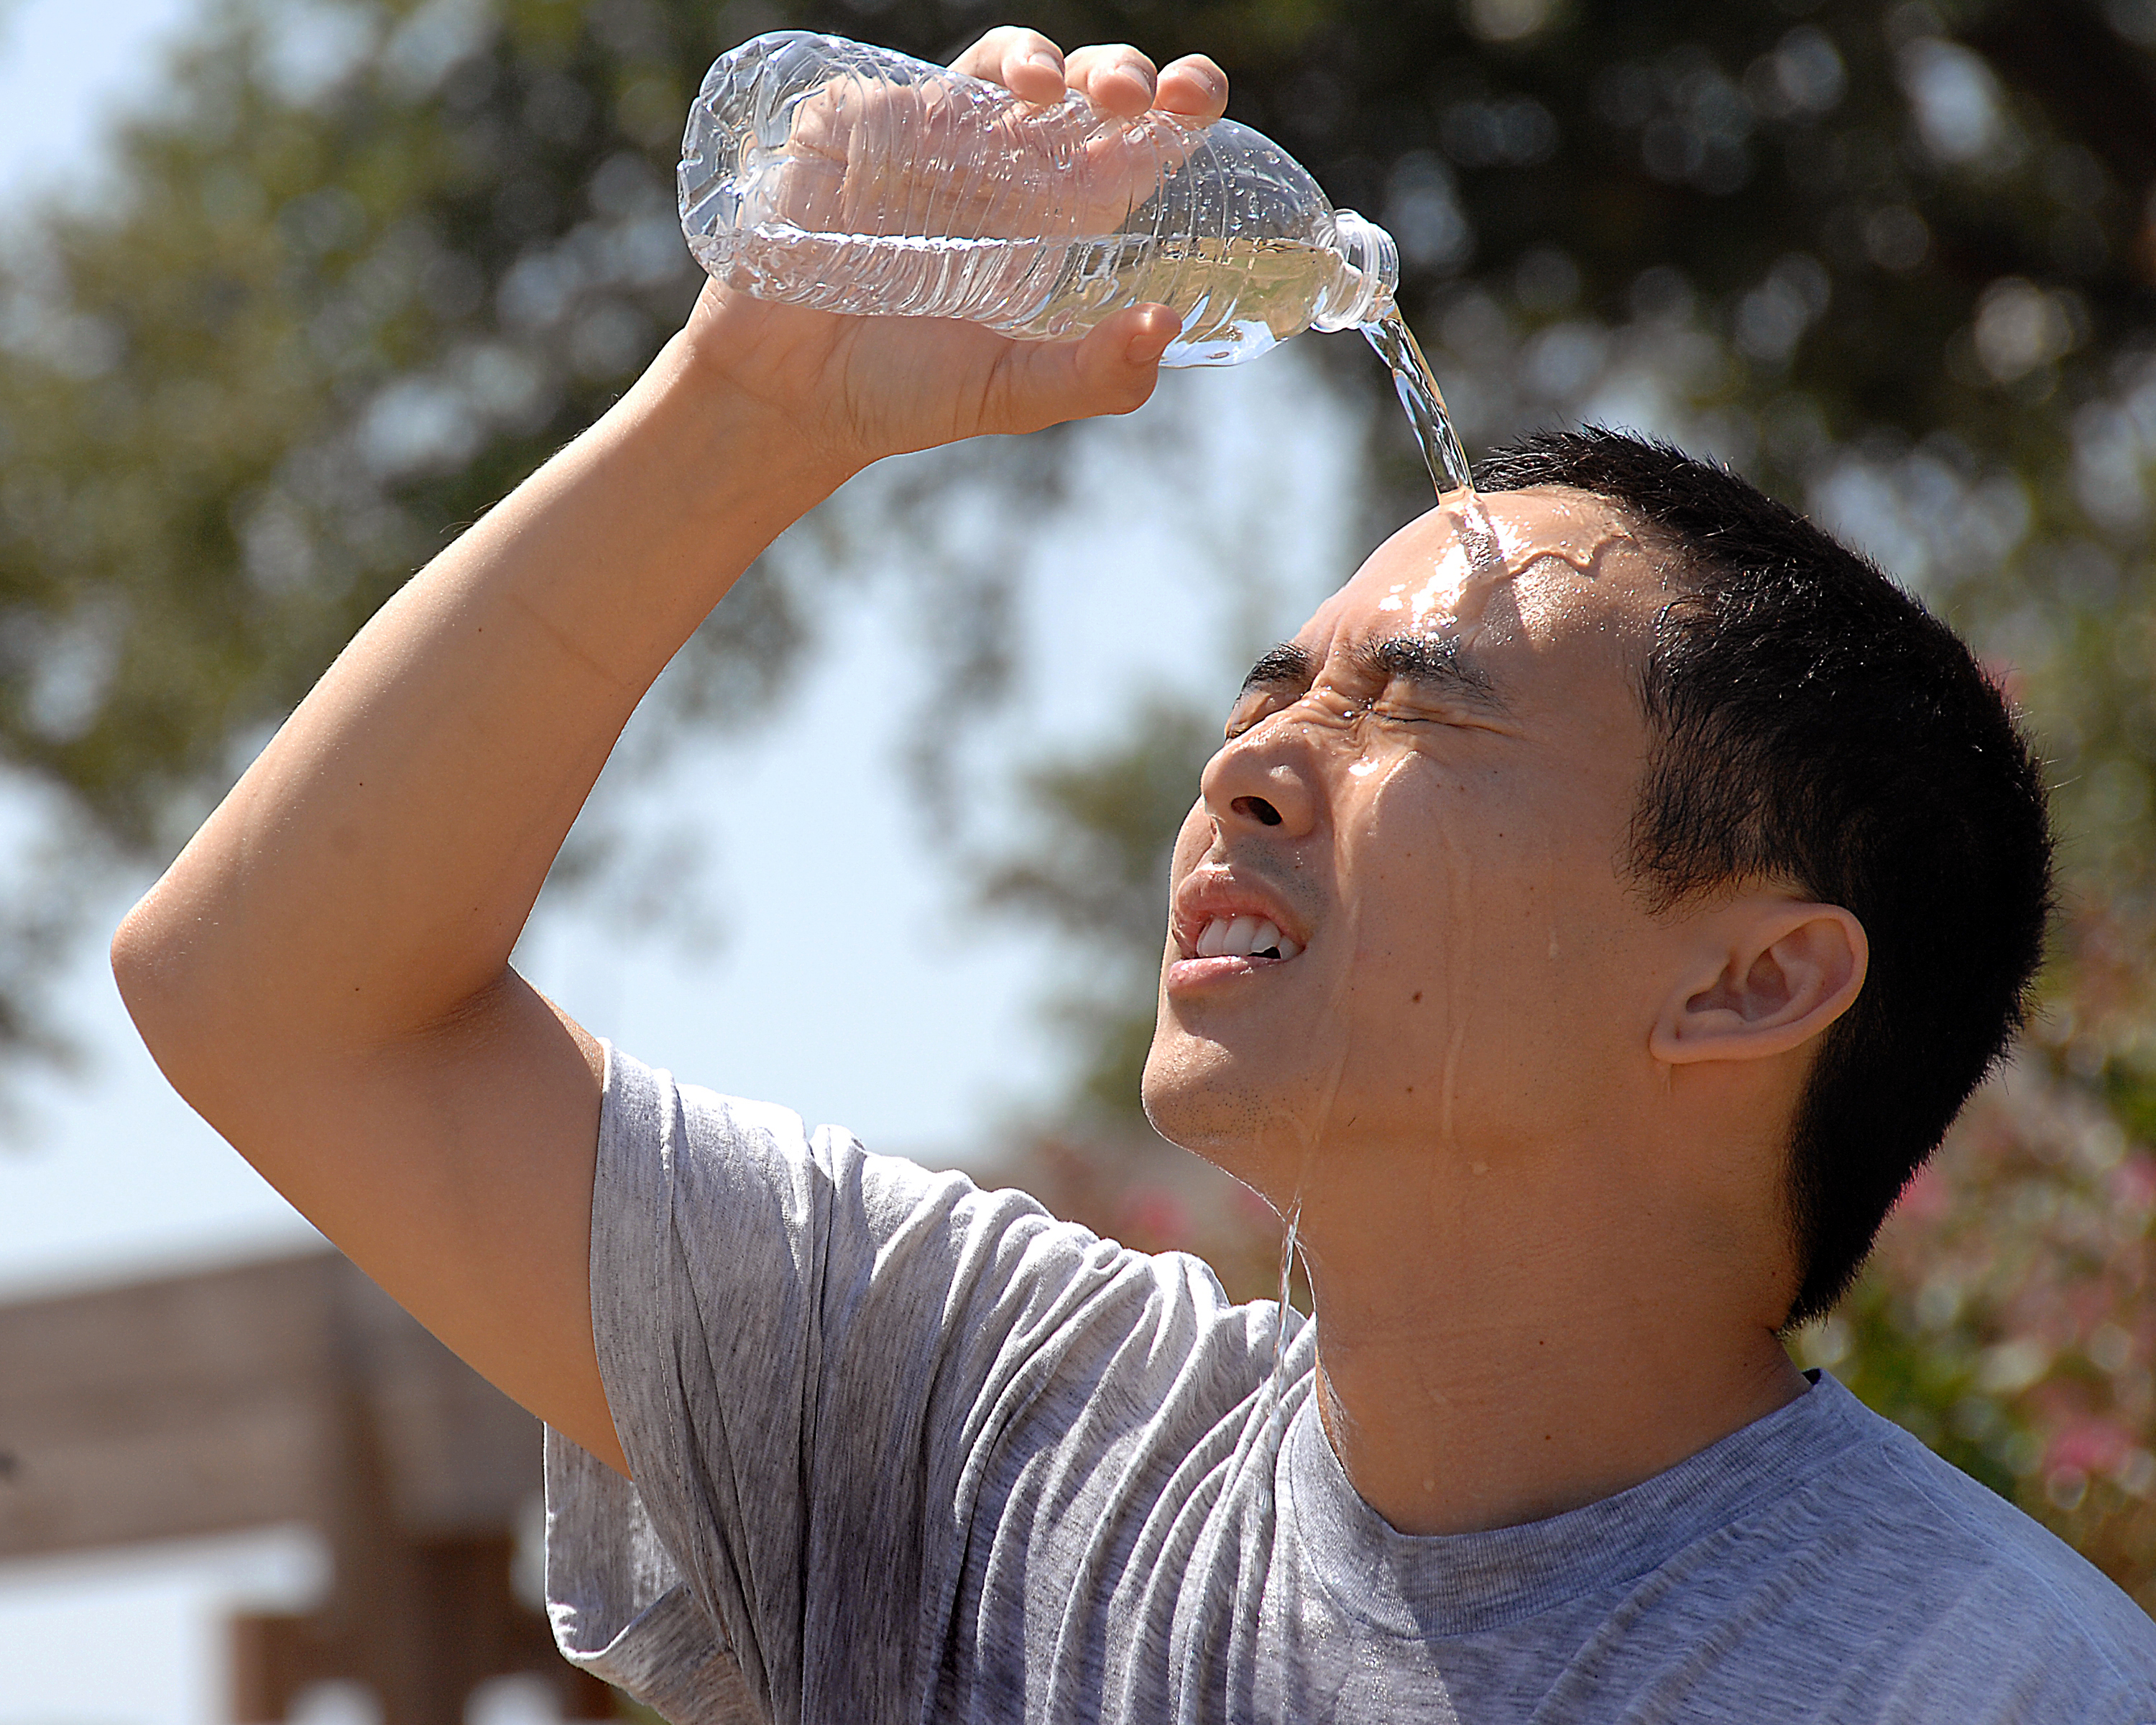 Image result for patient drinking water